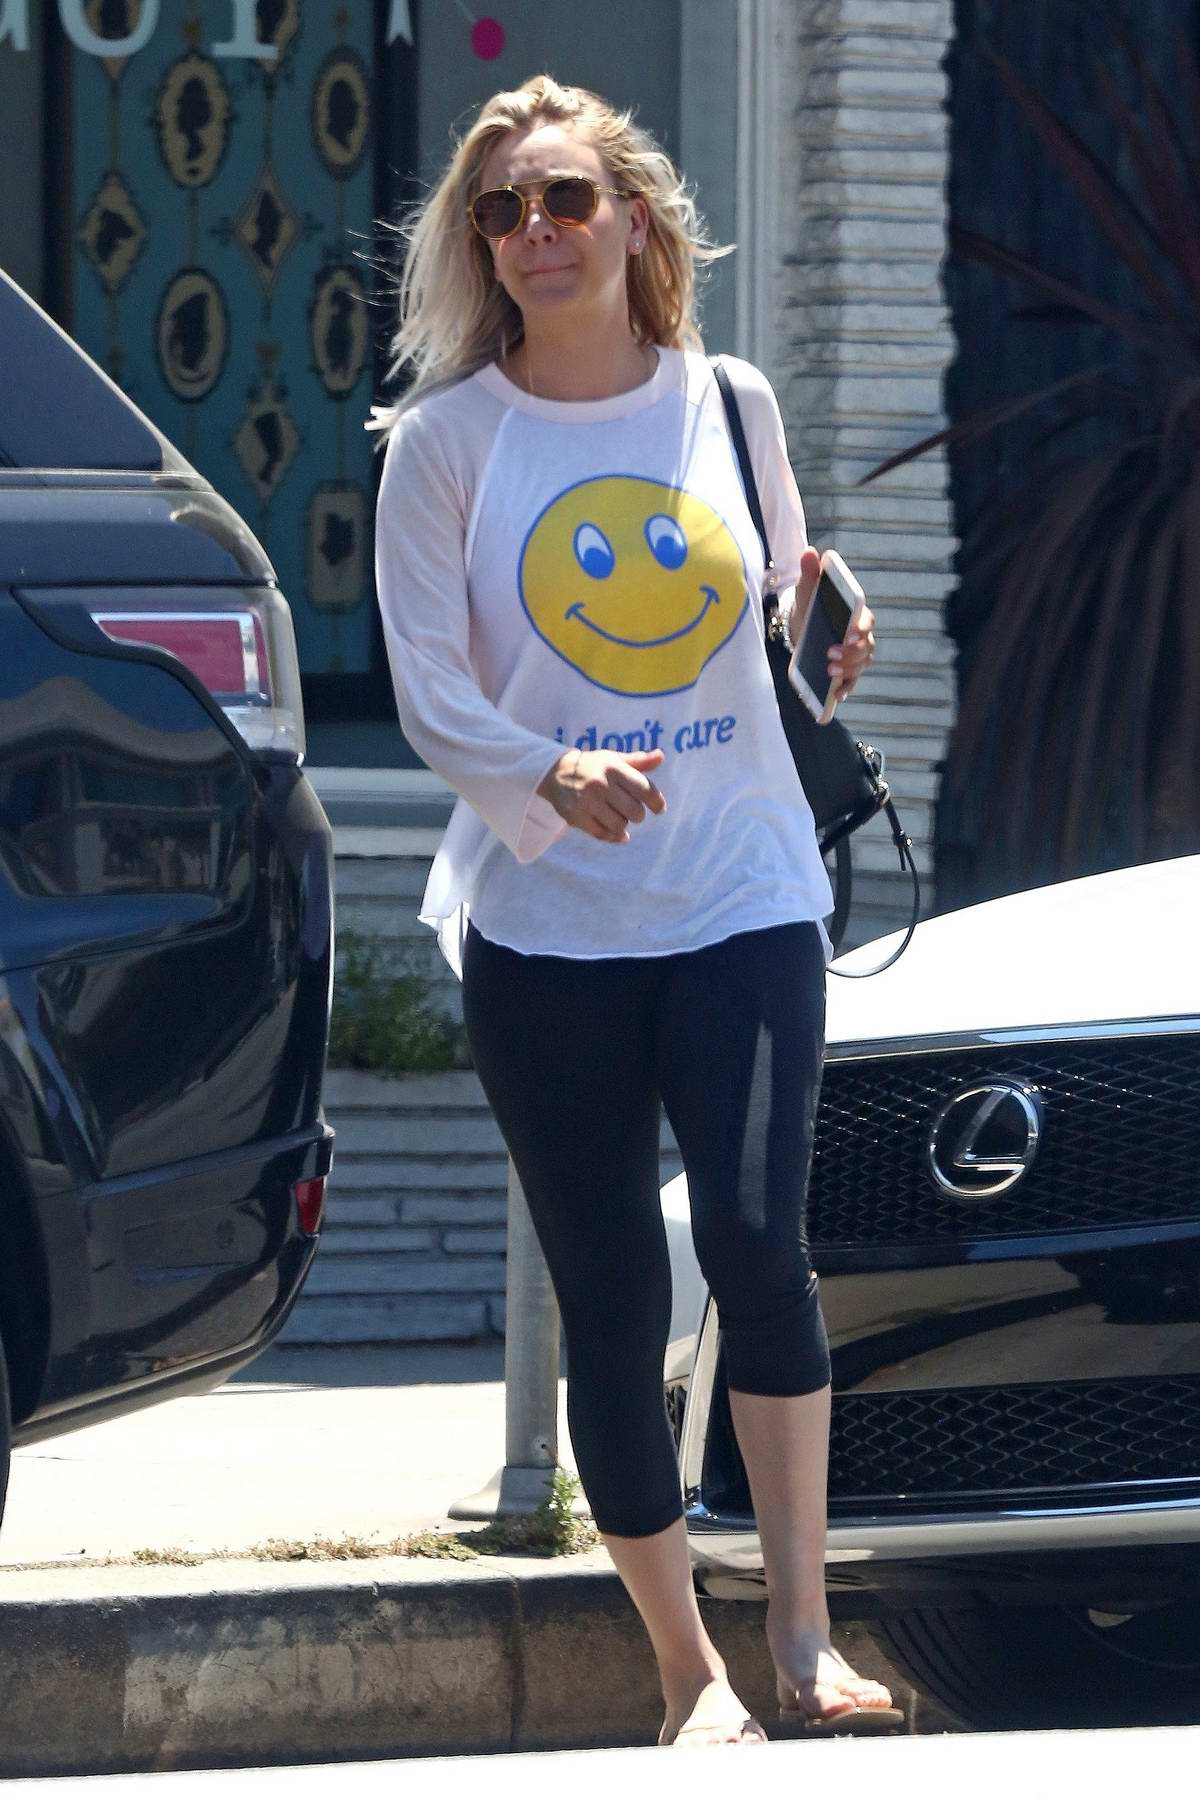 Kaley Cuoco in a Smiley Tee and Yoga Pants leaving a Nail Salon in Studio City